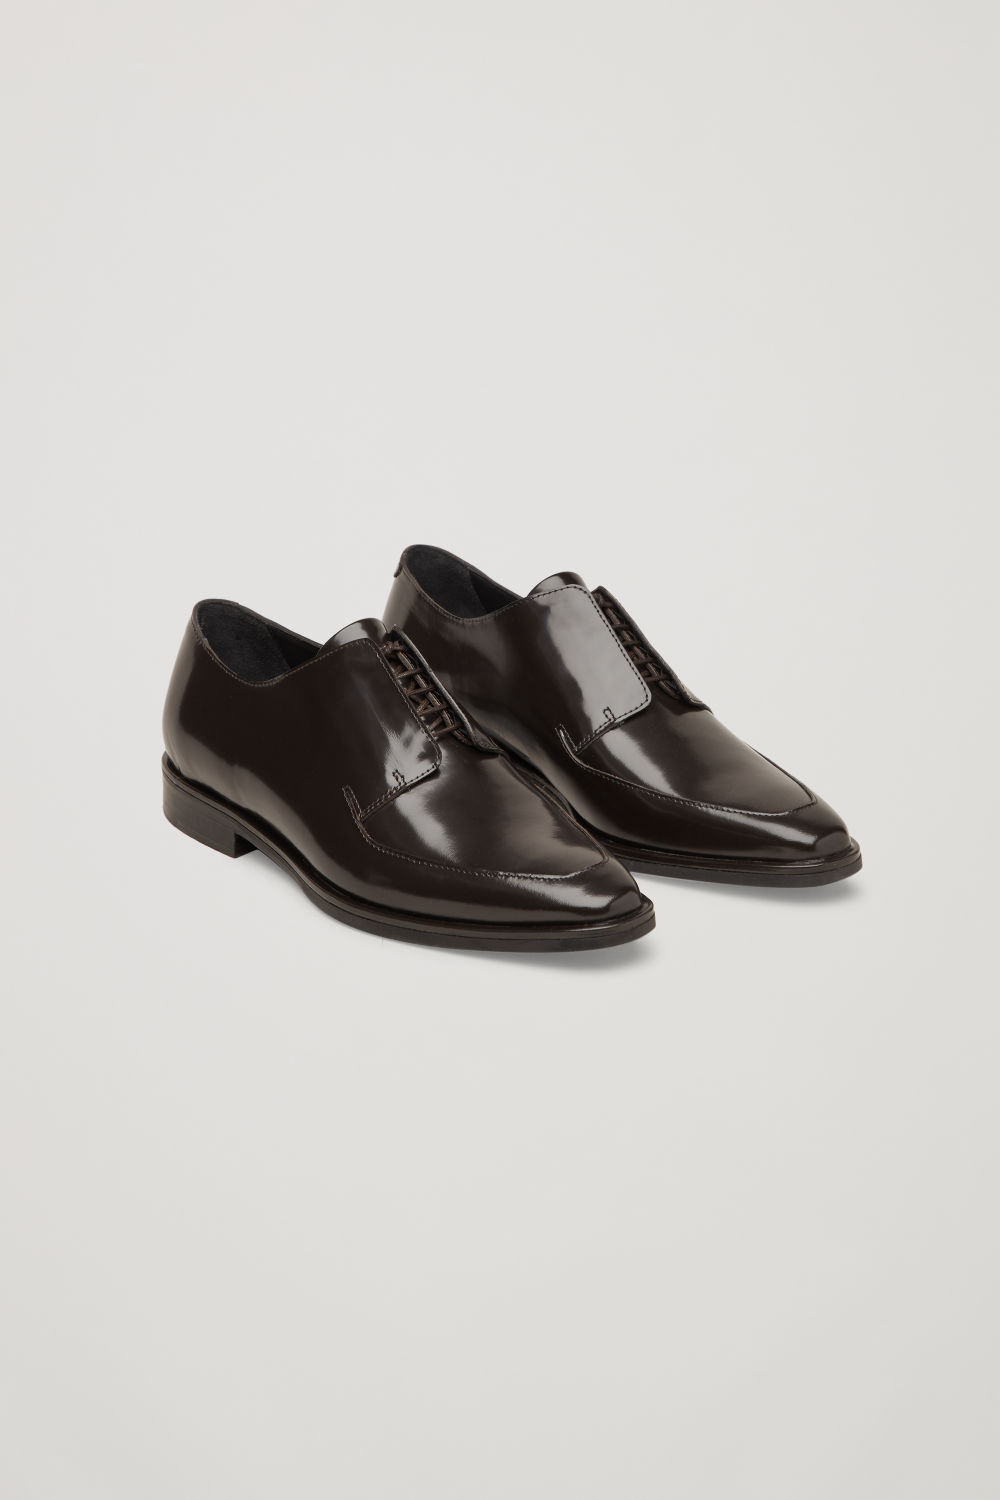 코스 COS POINTED LEATHER BROGUES,Dark brown